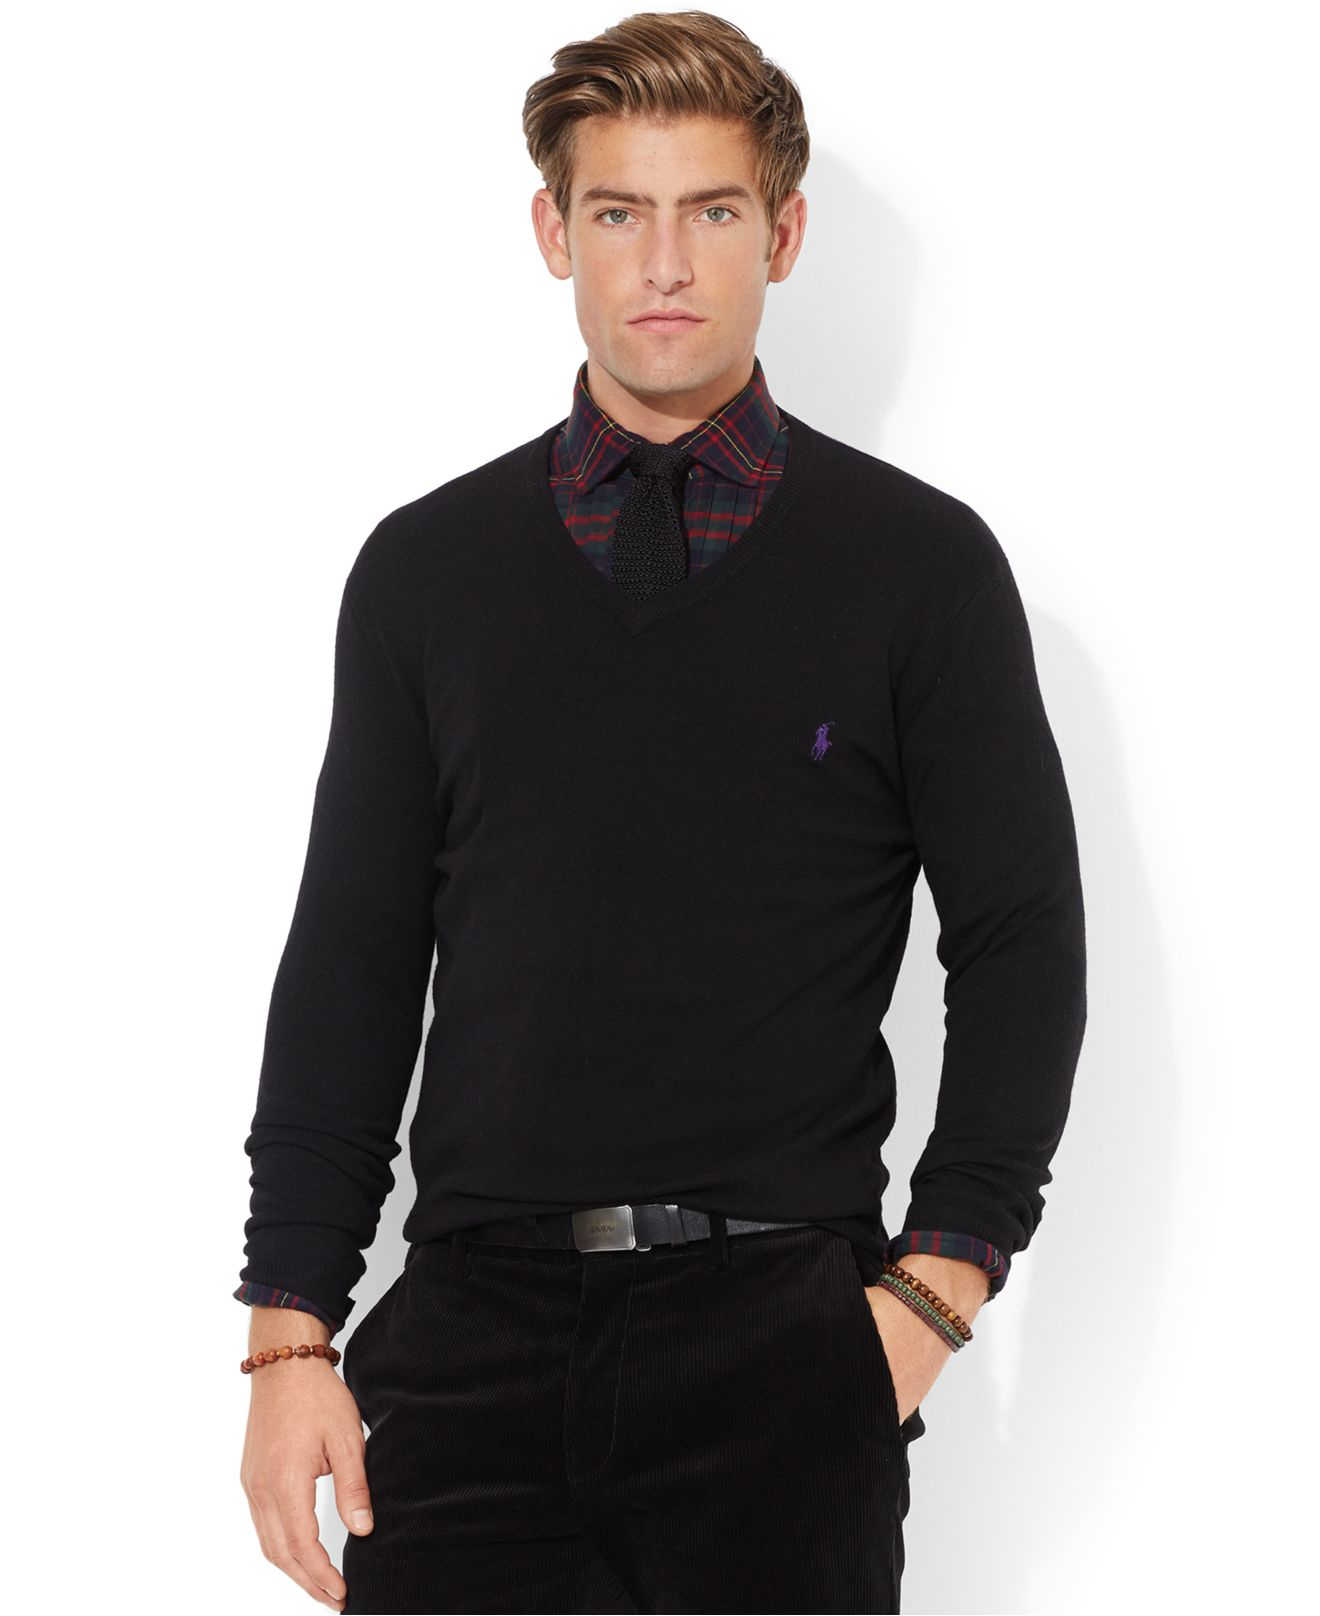 polo ralph lauren loryelle merino wool v neck sweater in black for men lyst. Black Bedroom Furniture Sets. Home Design Ideas